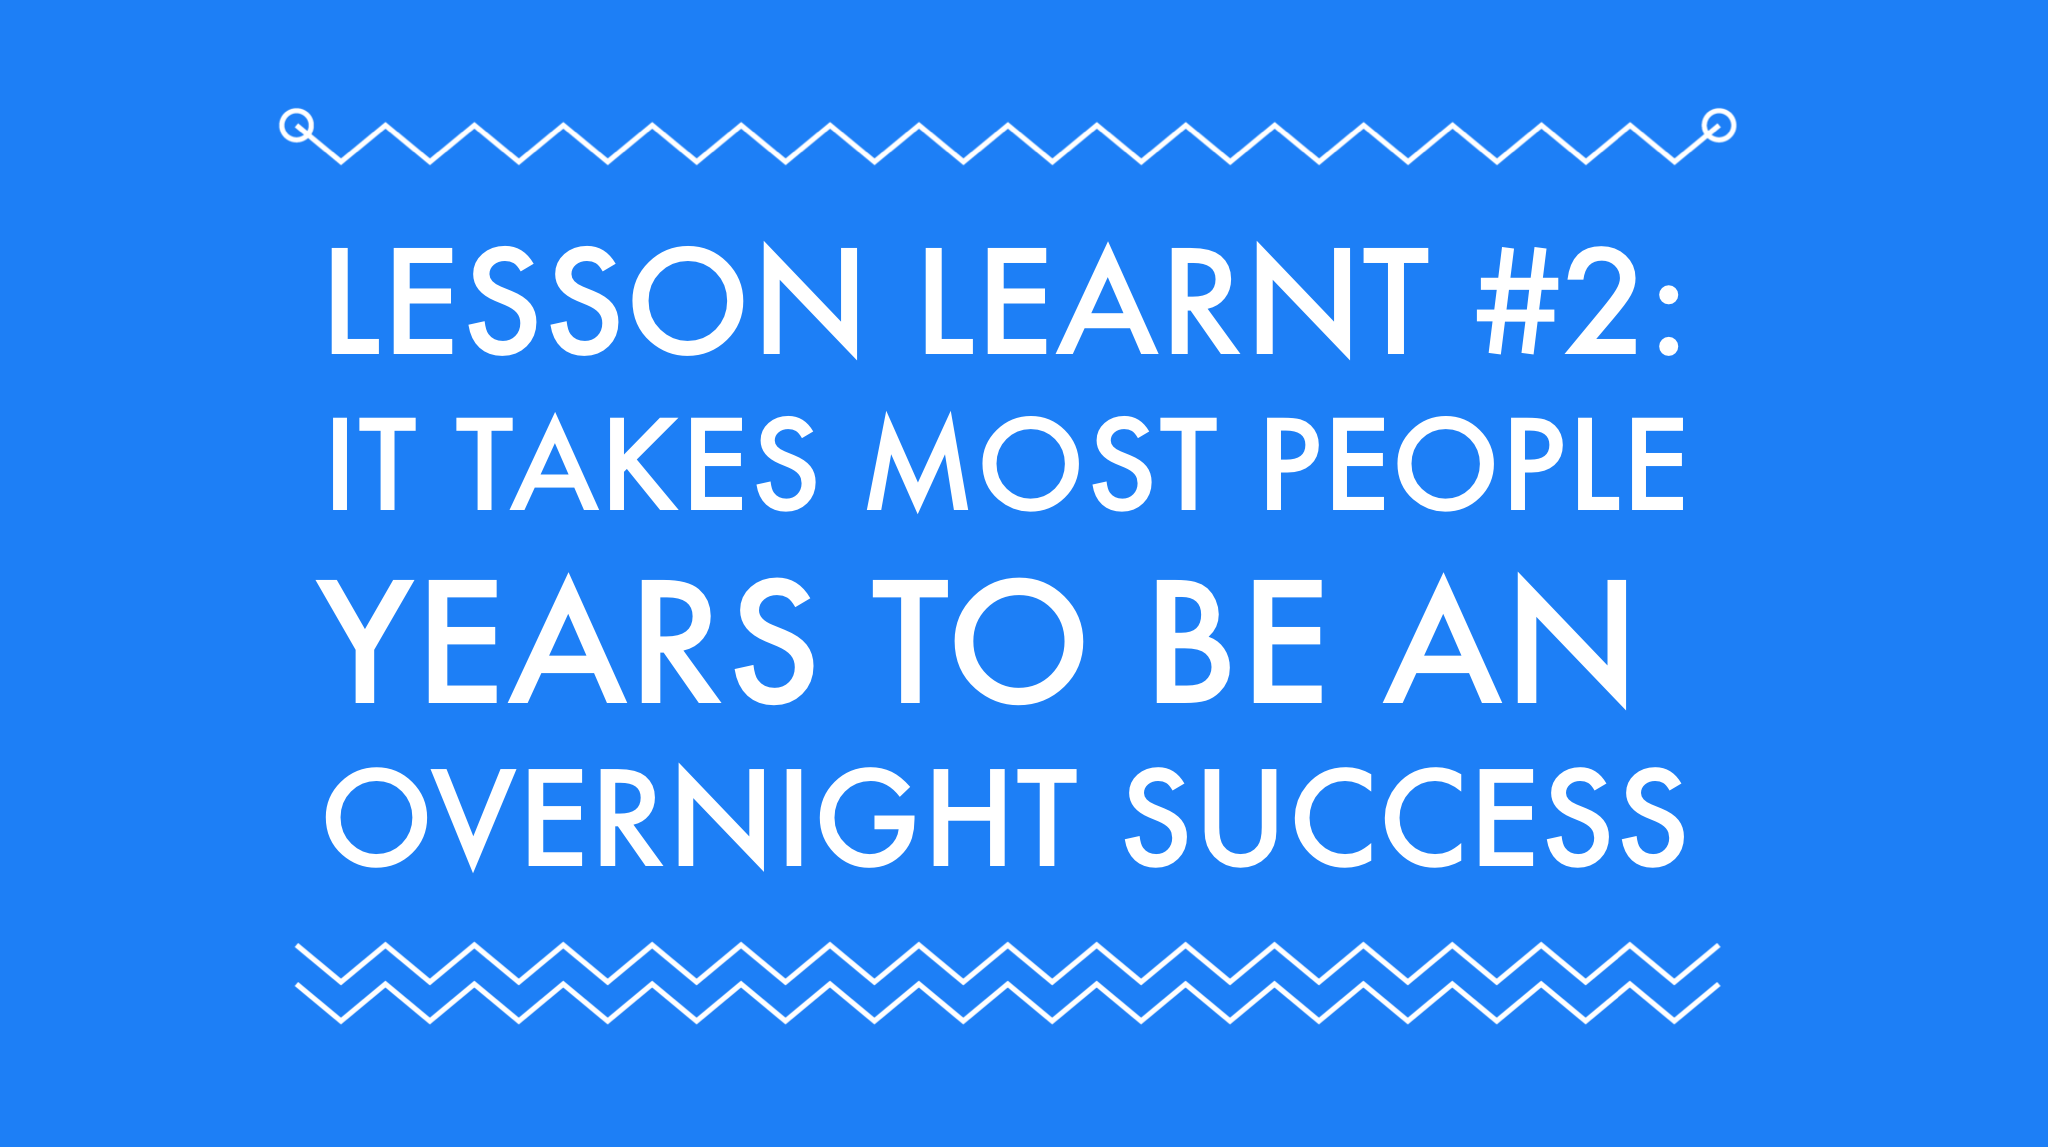 Lessons Learnt #2: It takes most people years to be an overnight success